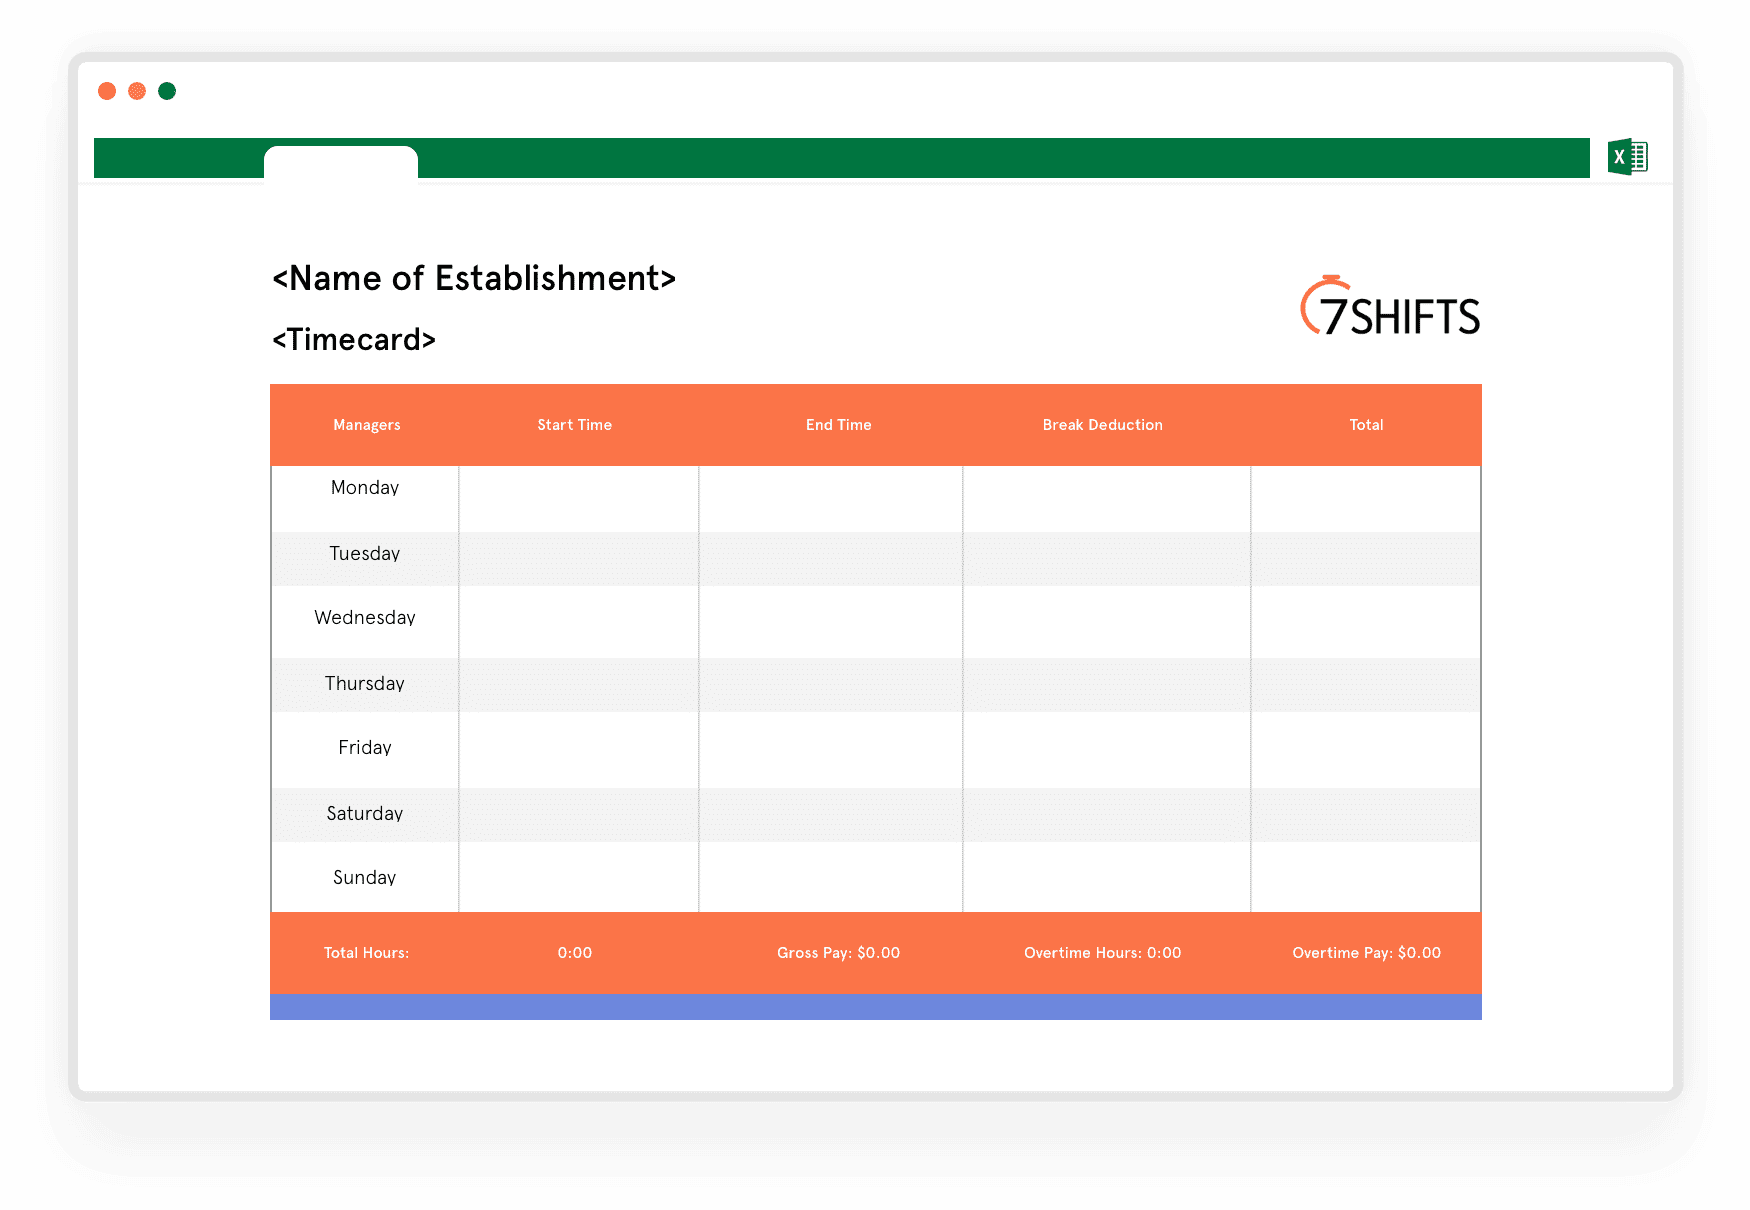 Download] Free Timecard Calculator Excel Template   30shifts   30shifts